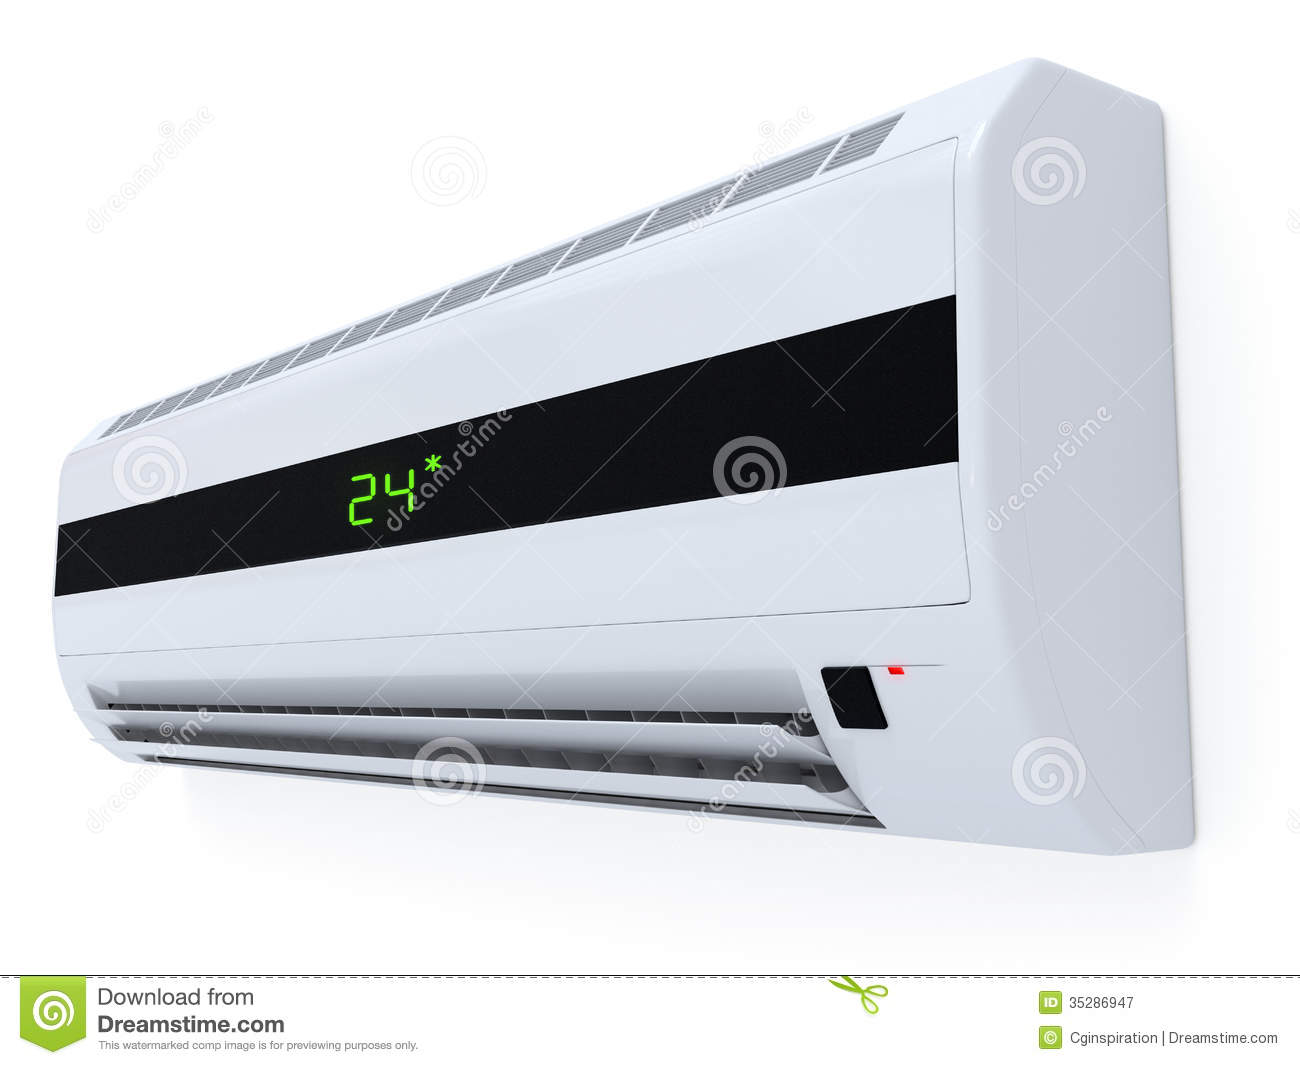 Modern Air Conditioner Royalty Free Stock Photography  : modern air conditioner d clip art 35286947 from www.dreamstime.com size 1300 x 1065 jpeg 73kB